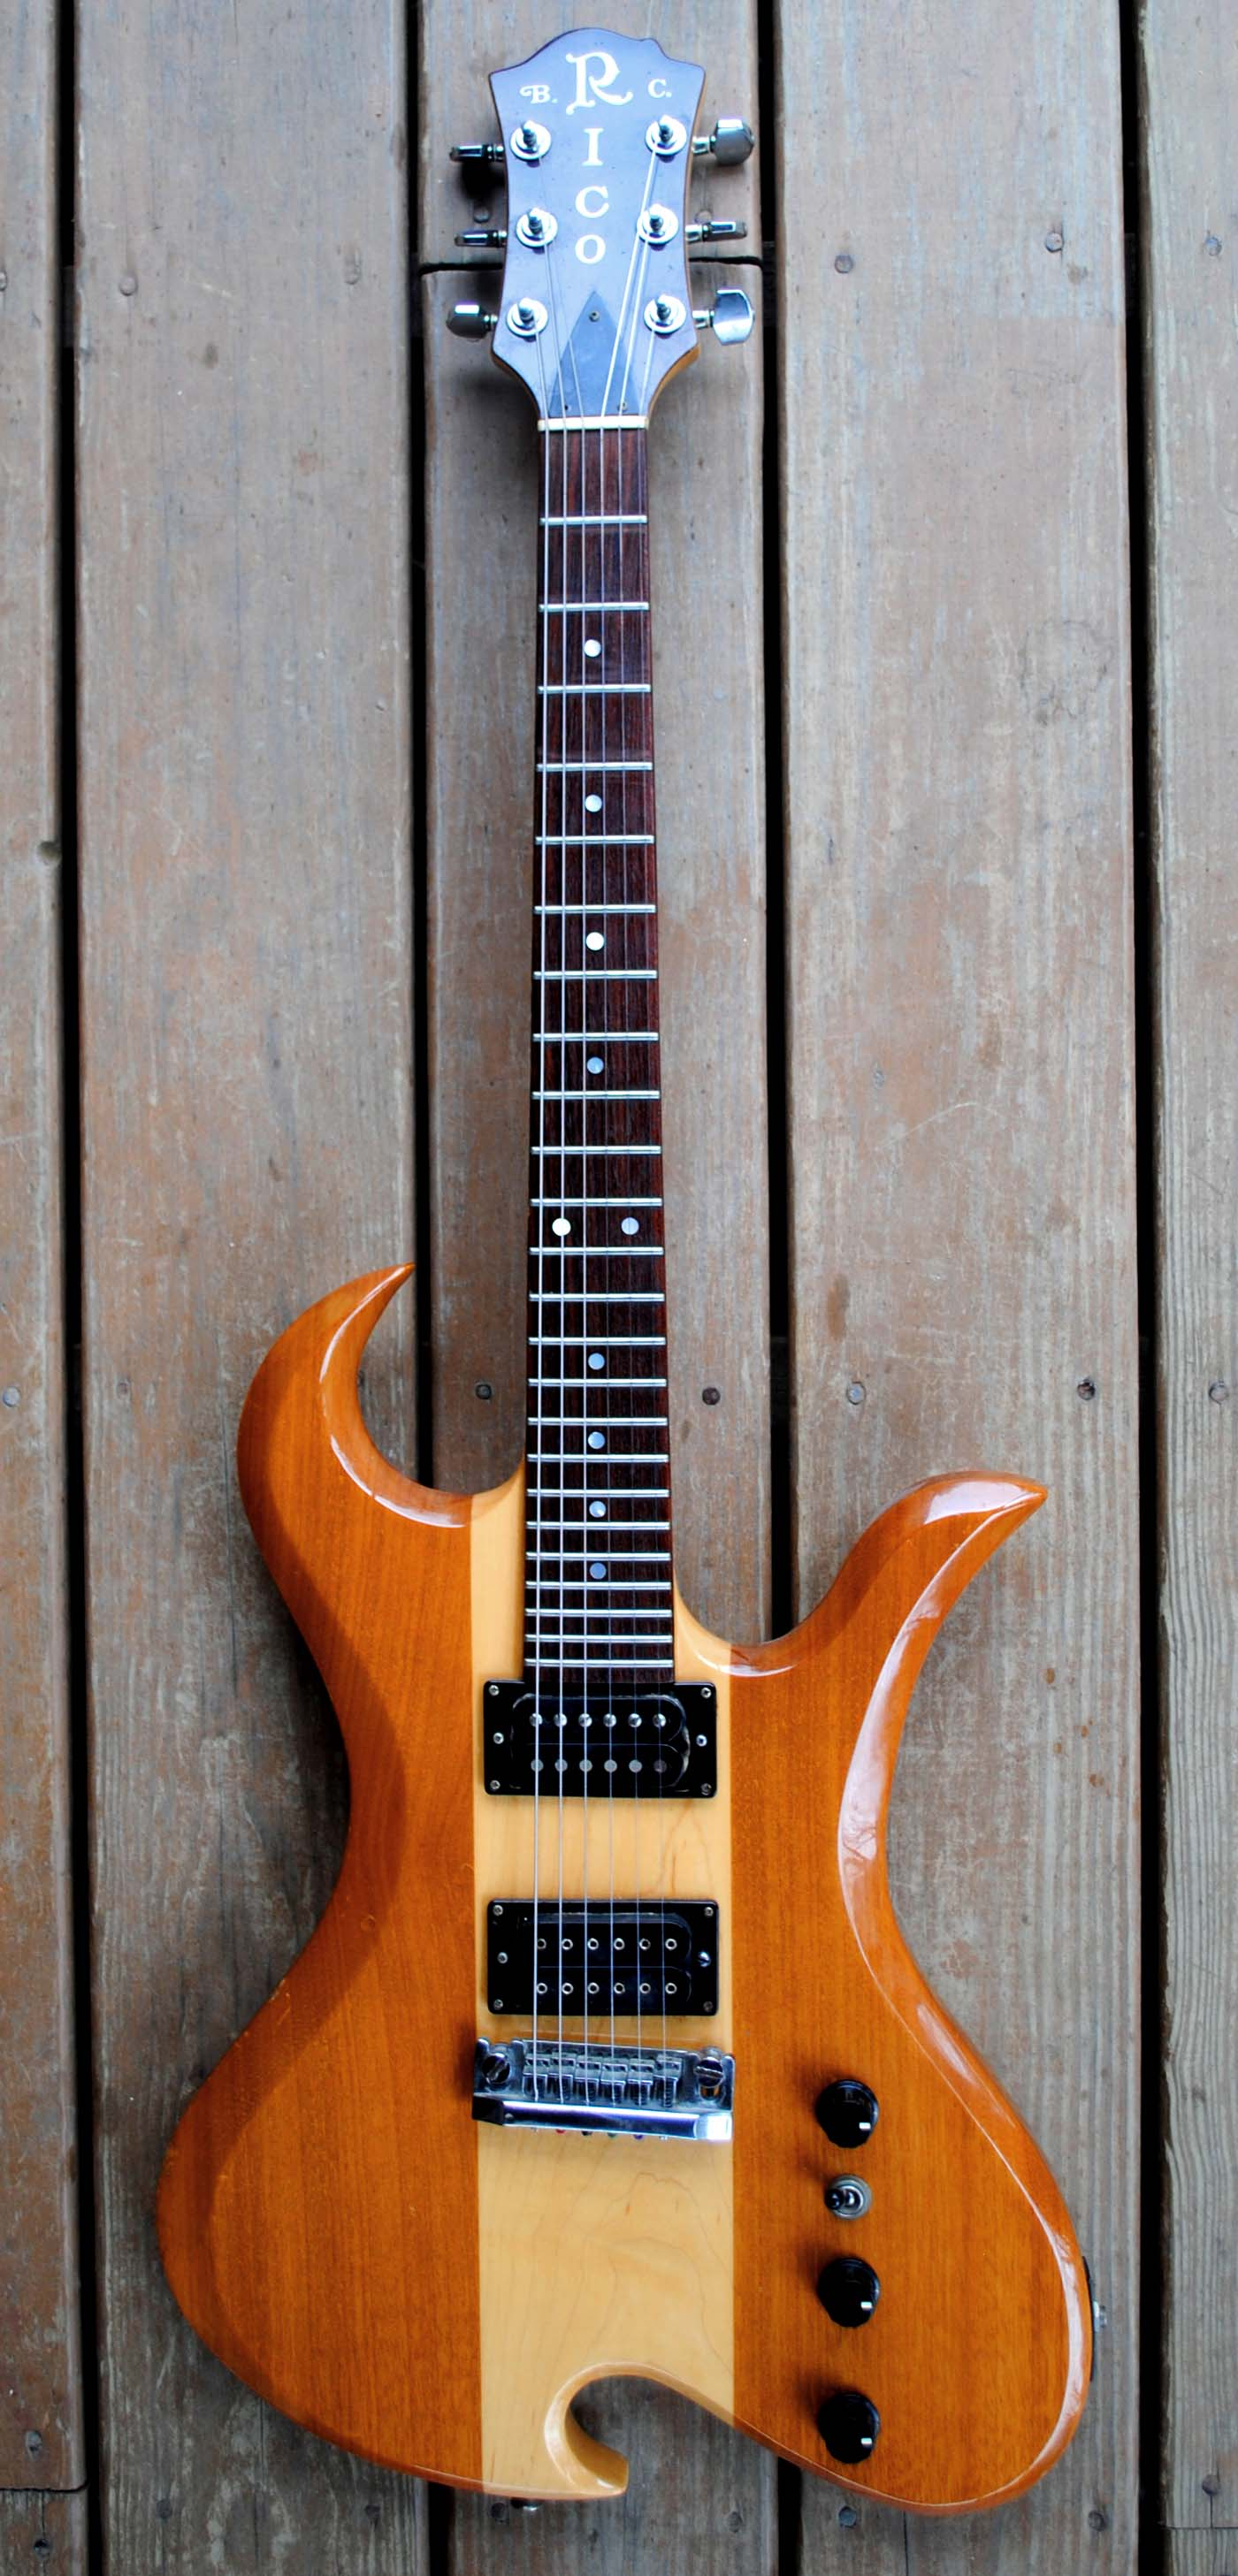 bc rico bc rich wave rare collectable electric guitar for sale classifieds. Black Bedroom Furniture Sets. Home Design Ideas